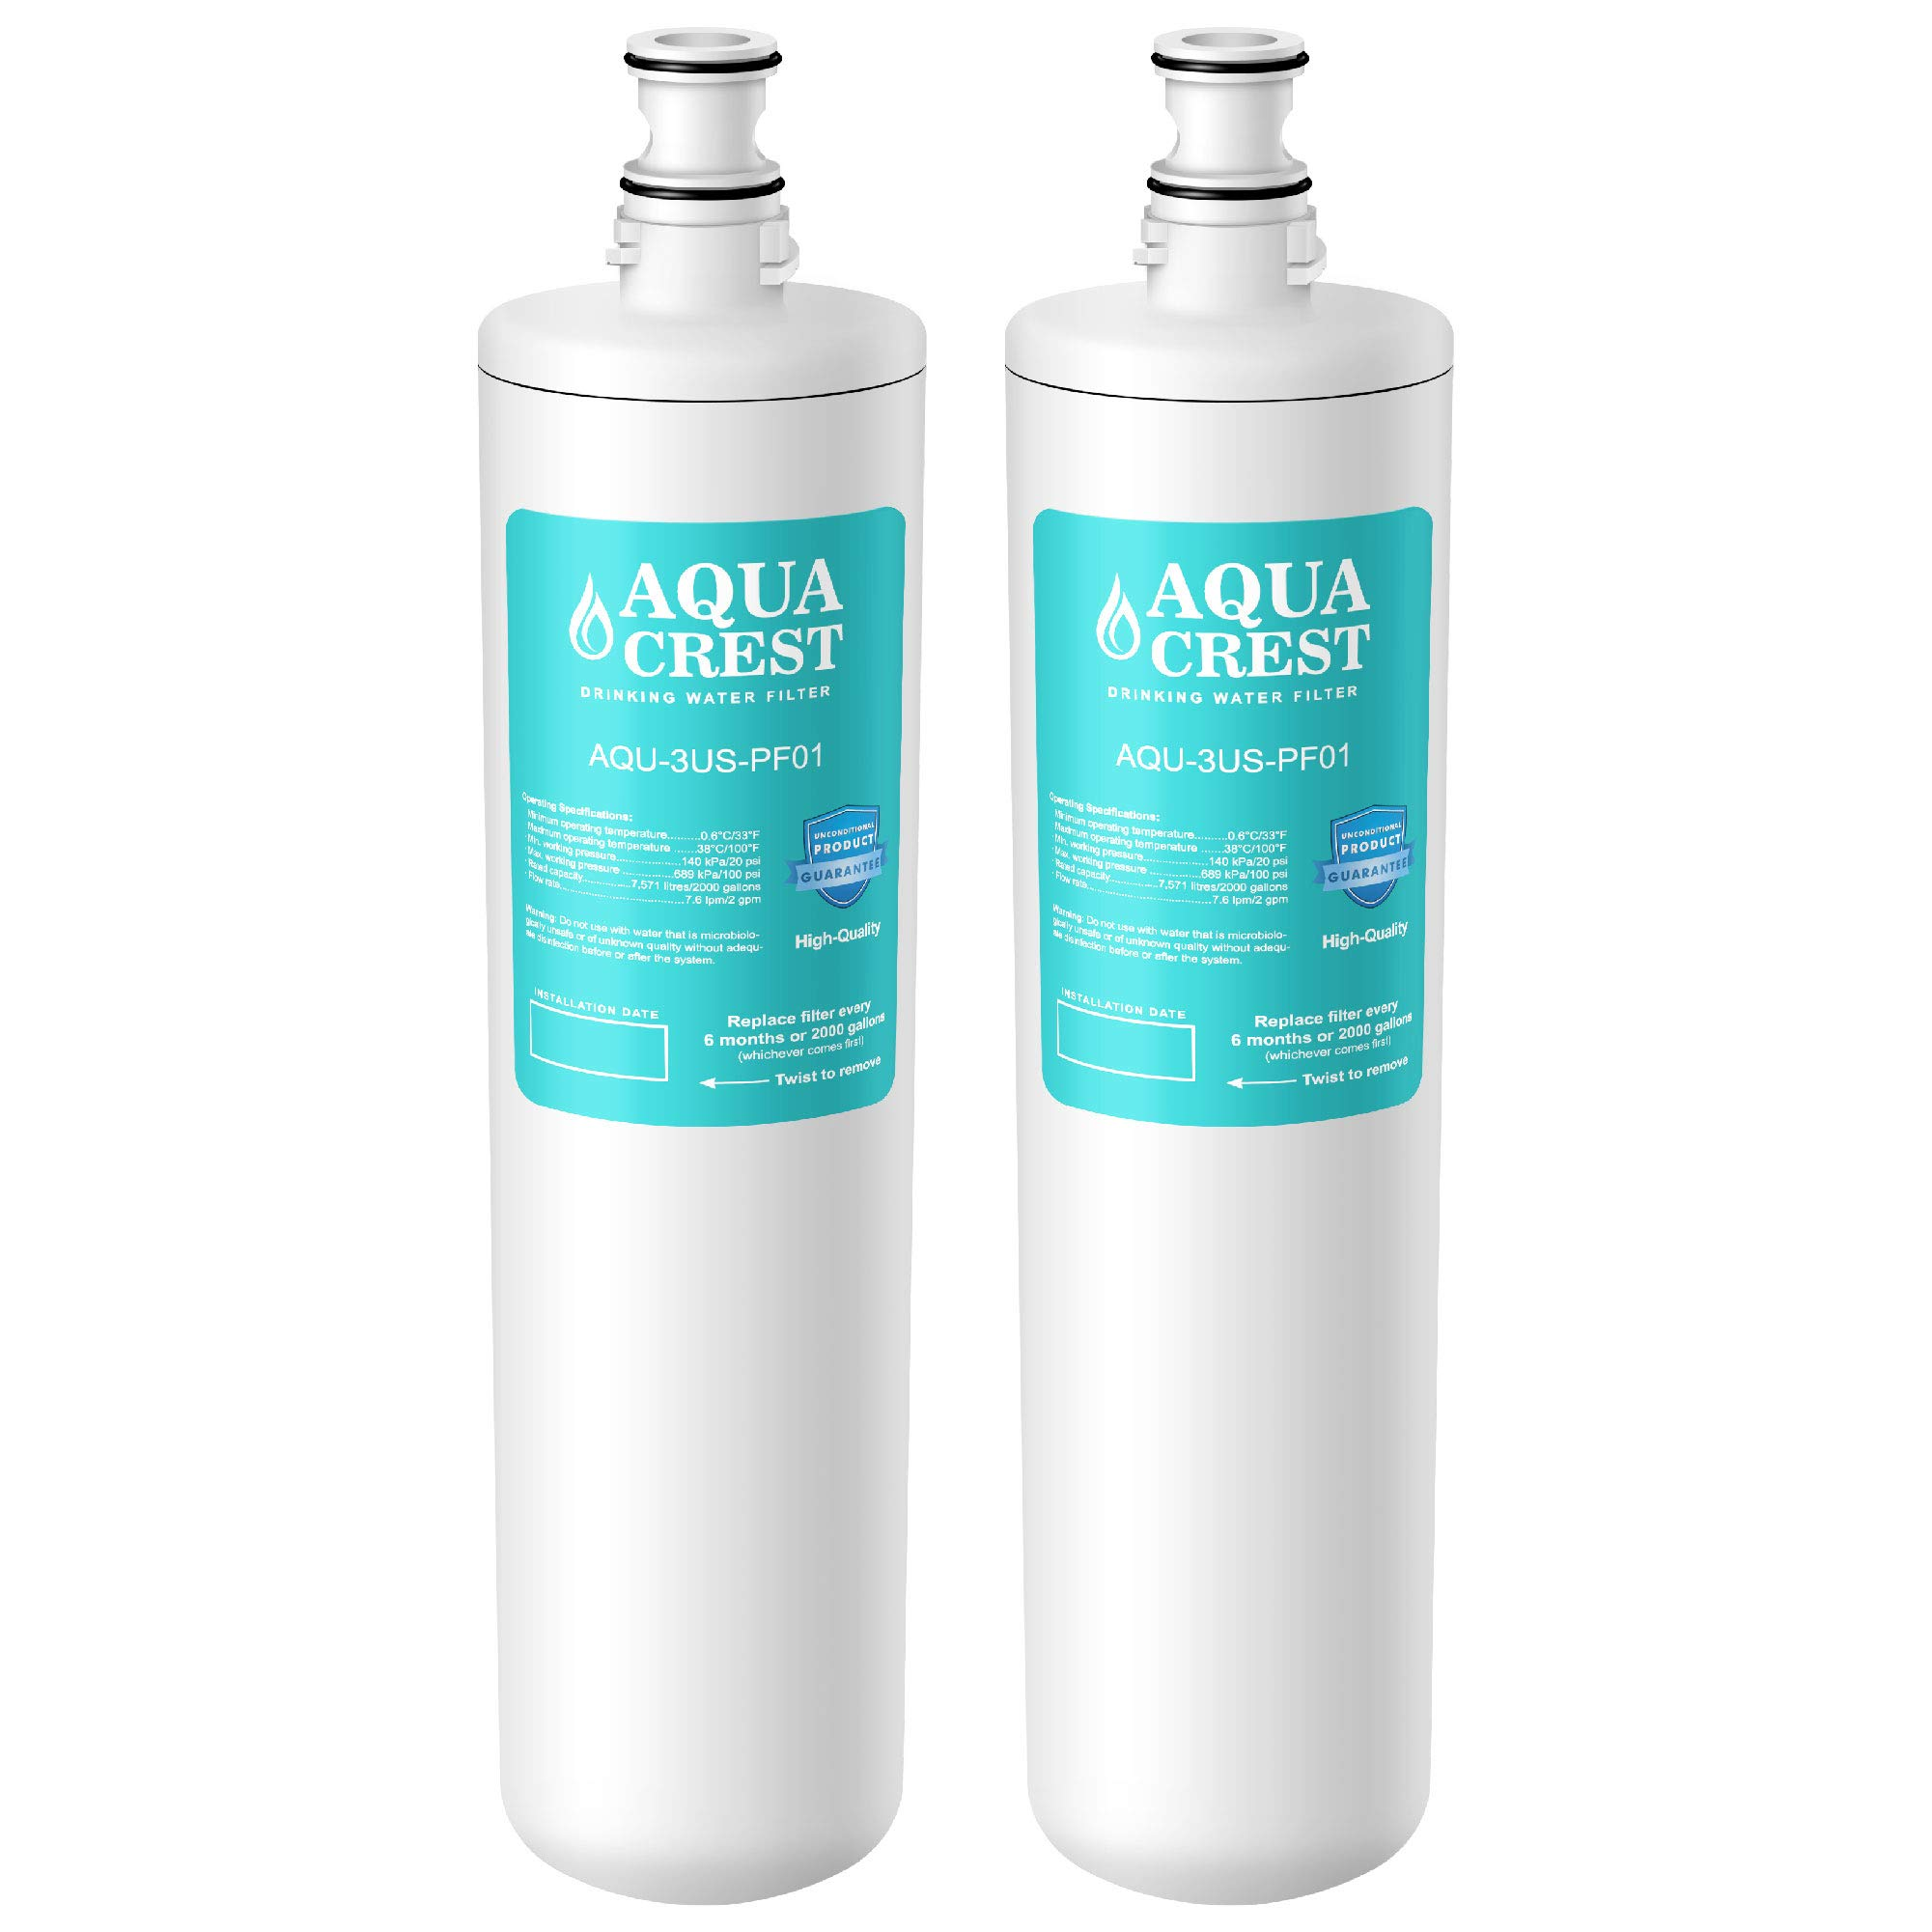 AQUA CREST 3US-PF01 Under Sink Water Filter, Compatible with Filtrete Advanced 3US-PF01, 3US-MAX-F01H, 3US-PF01H, Delta RP78702, Manitowoc K-00337, K-00338 Water Filter (Pack of 2) by AQUA CREST